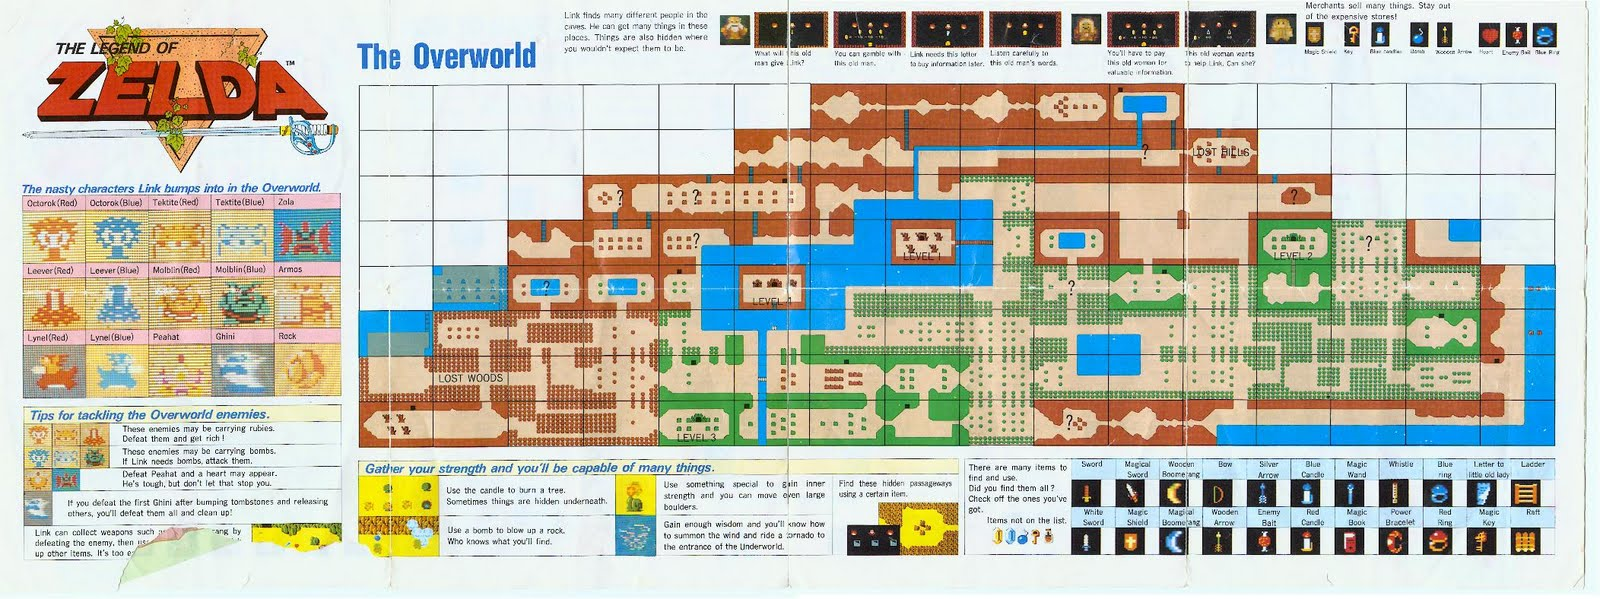 legend_of_zelda_map_front Zelda Map on making a simple map, hyrule world map, skyward sword sky map, king's quest 1 map, tomb raider 1 map, portal 1 map, metal gear solid 1 map, assassin's creed 1 map, strategy 1 map, nes zelda world map, mario 1 map, legacy of the wizard map, zelda cheat map, zelda adventure map, majora's mask map, guild wars 1 map, zelda 3 map, history mind map, uncharted 1 map, the sims 1 map,